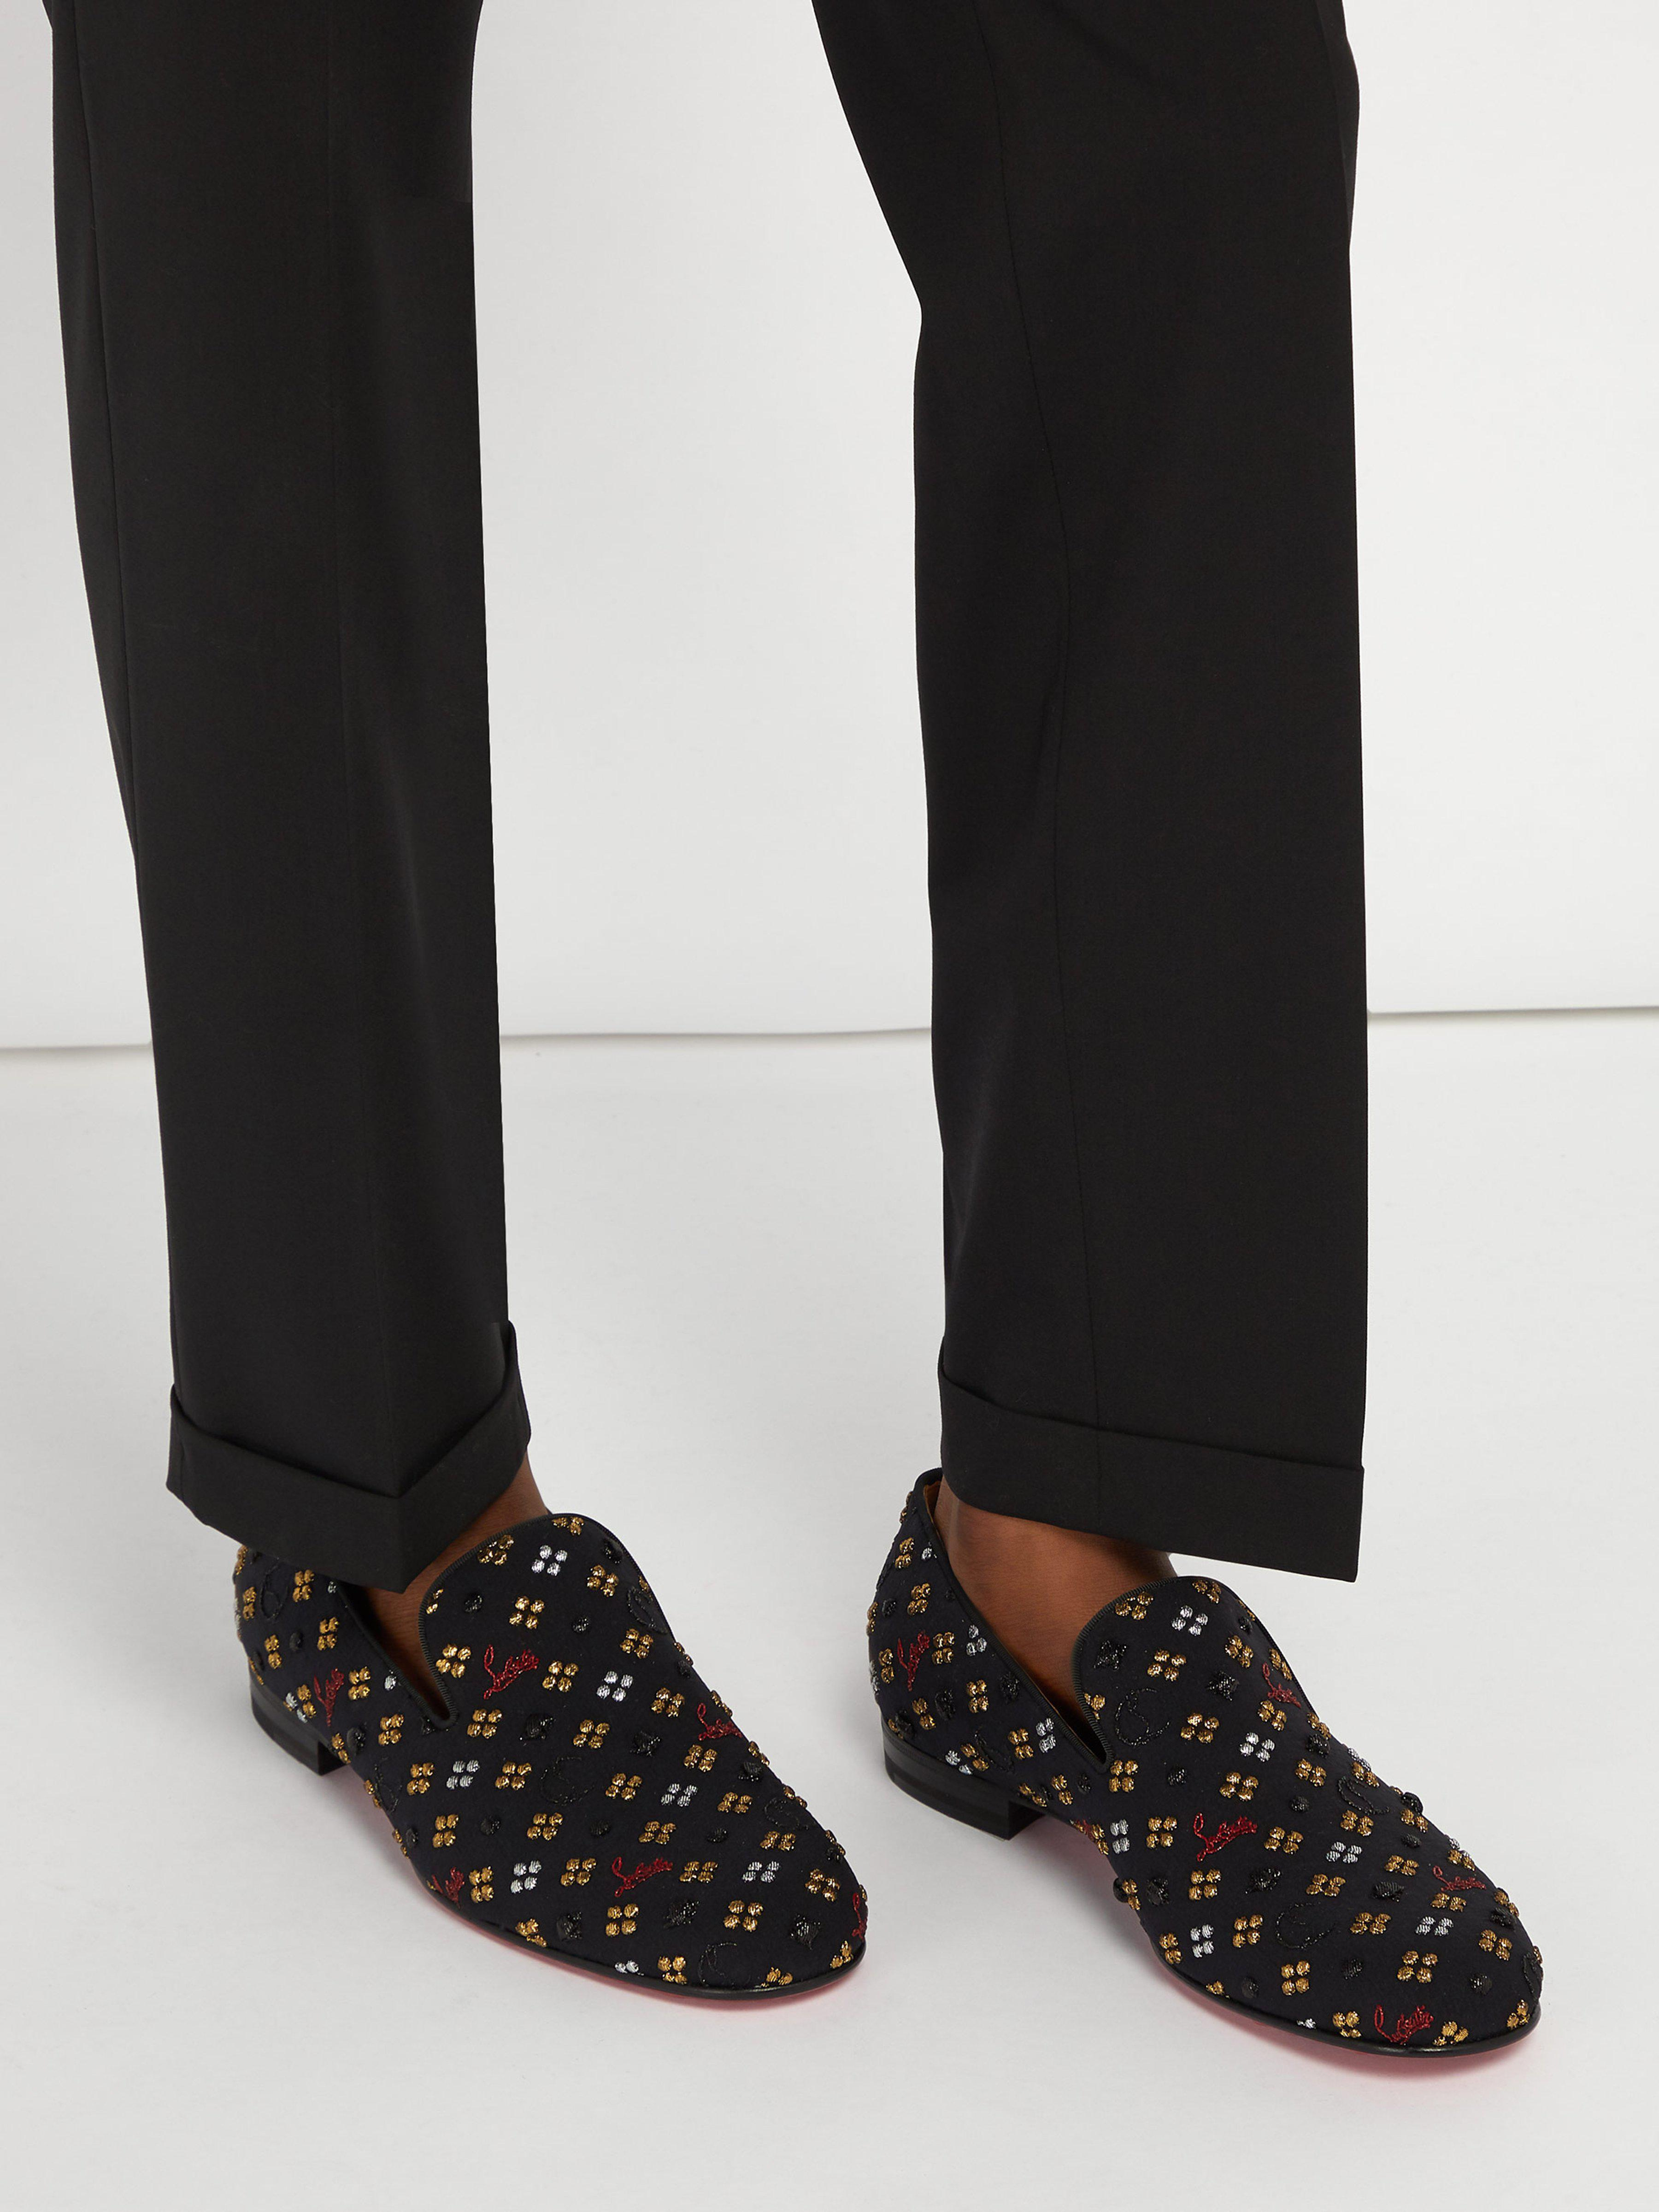 792f7d93759 Christian Louboutin Rollerboy Jacquard Loafers in Black for Men - Lyst